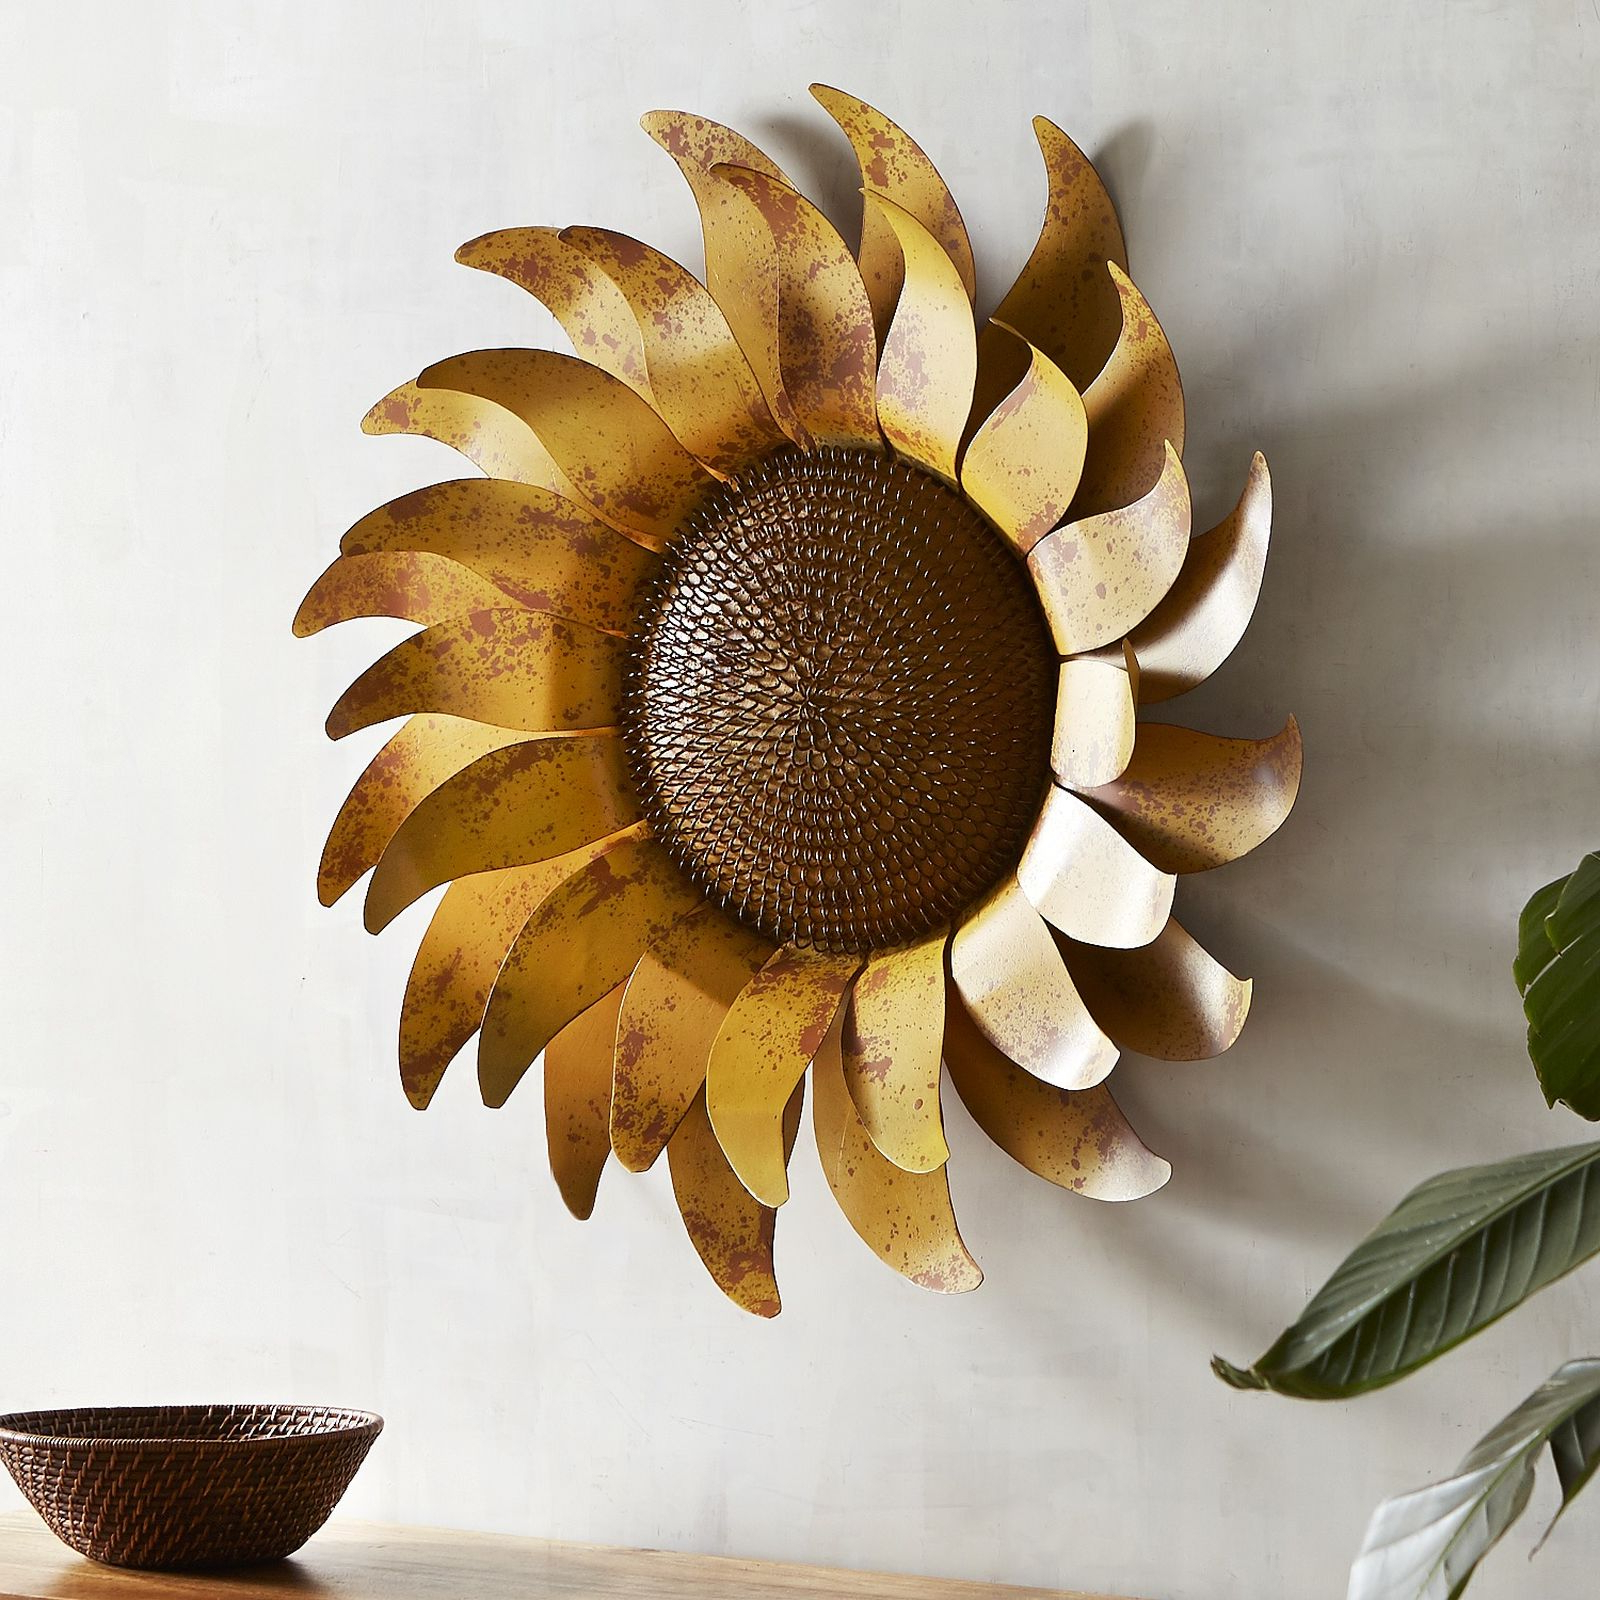 Widely Used Valuable Sunflower Wall Decor Or Metal Youtube For Kitchen Diy Con With Regard To Nature Metal Sun Wall Decor (View 20 of 20)